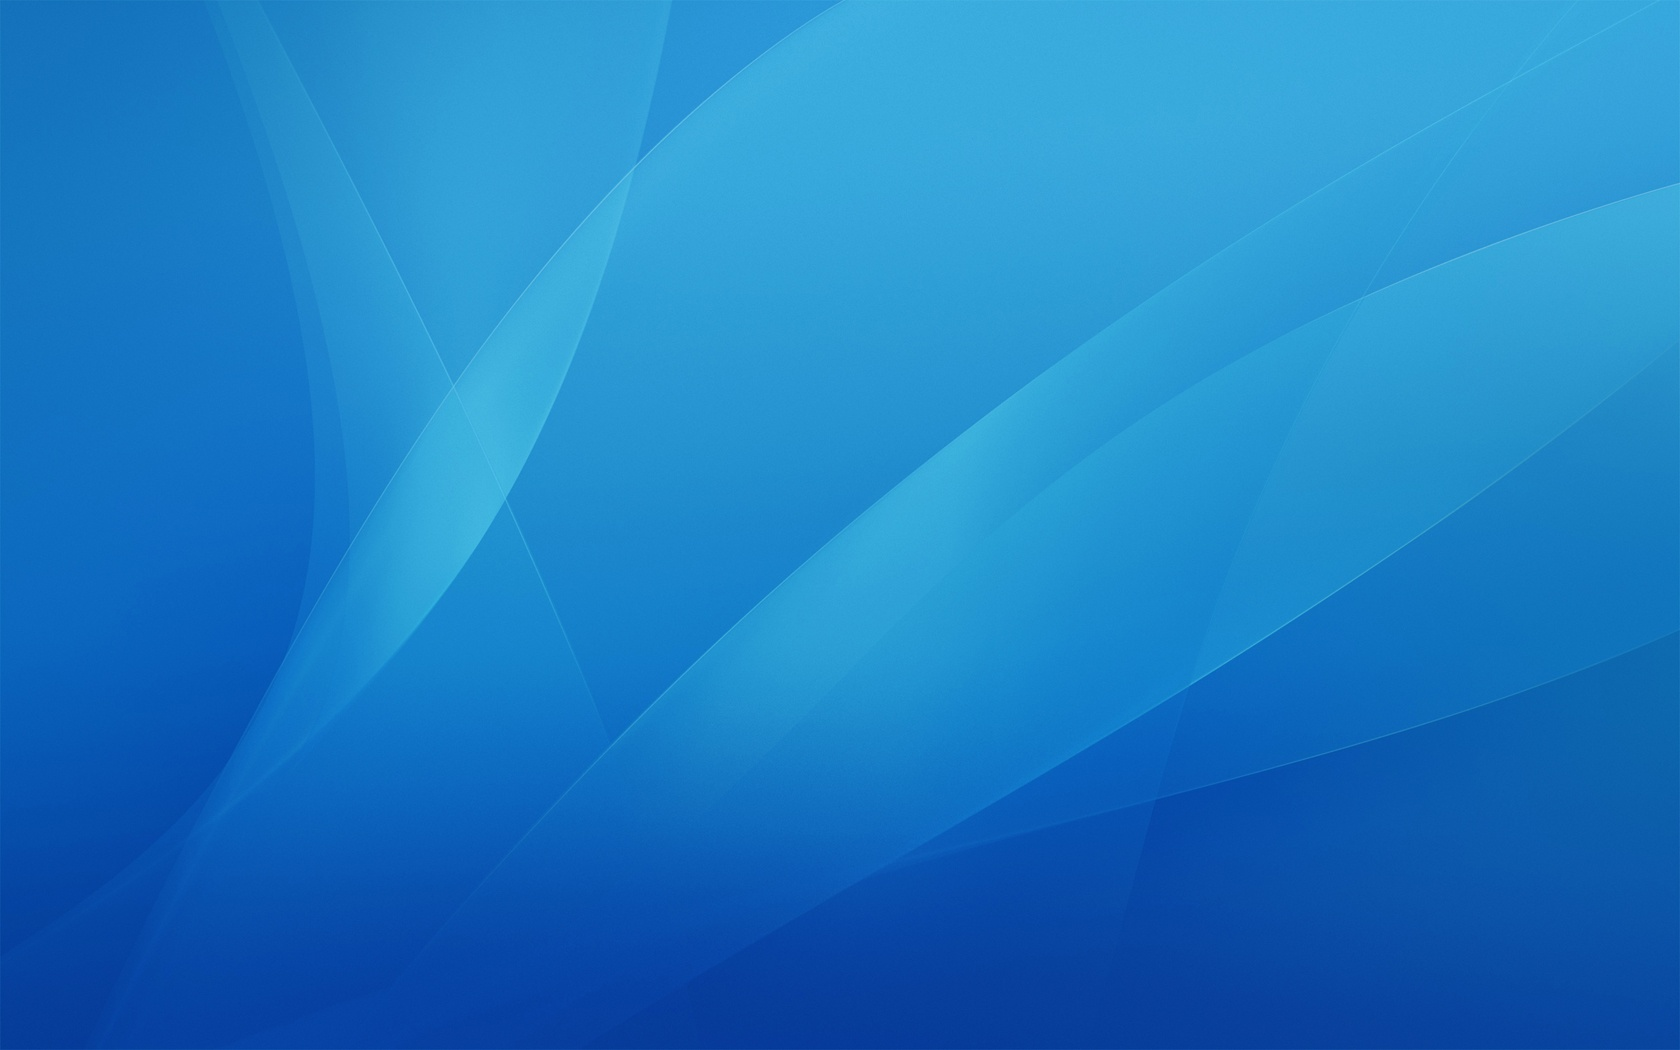 Light Neon Baby Blue Abstract Wallpaper 5240 Hd Wallpapers Background 1680x1050